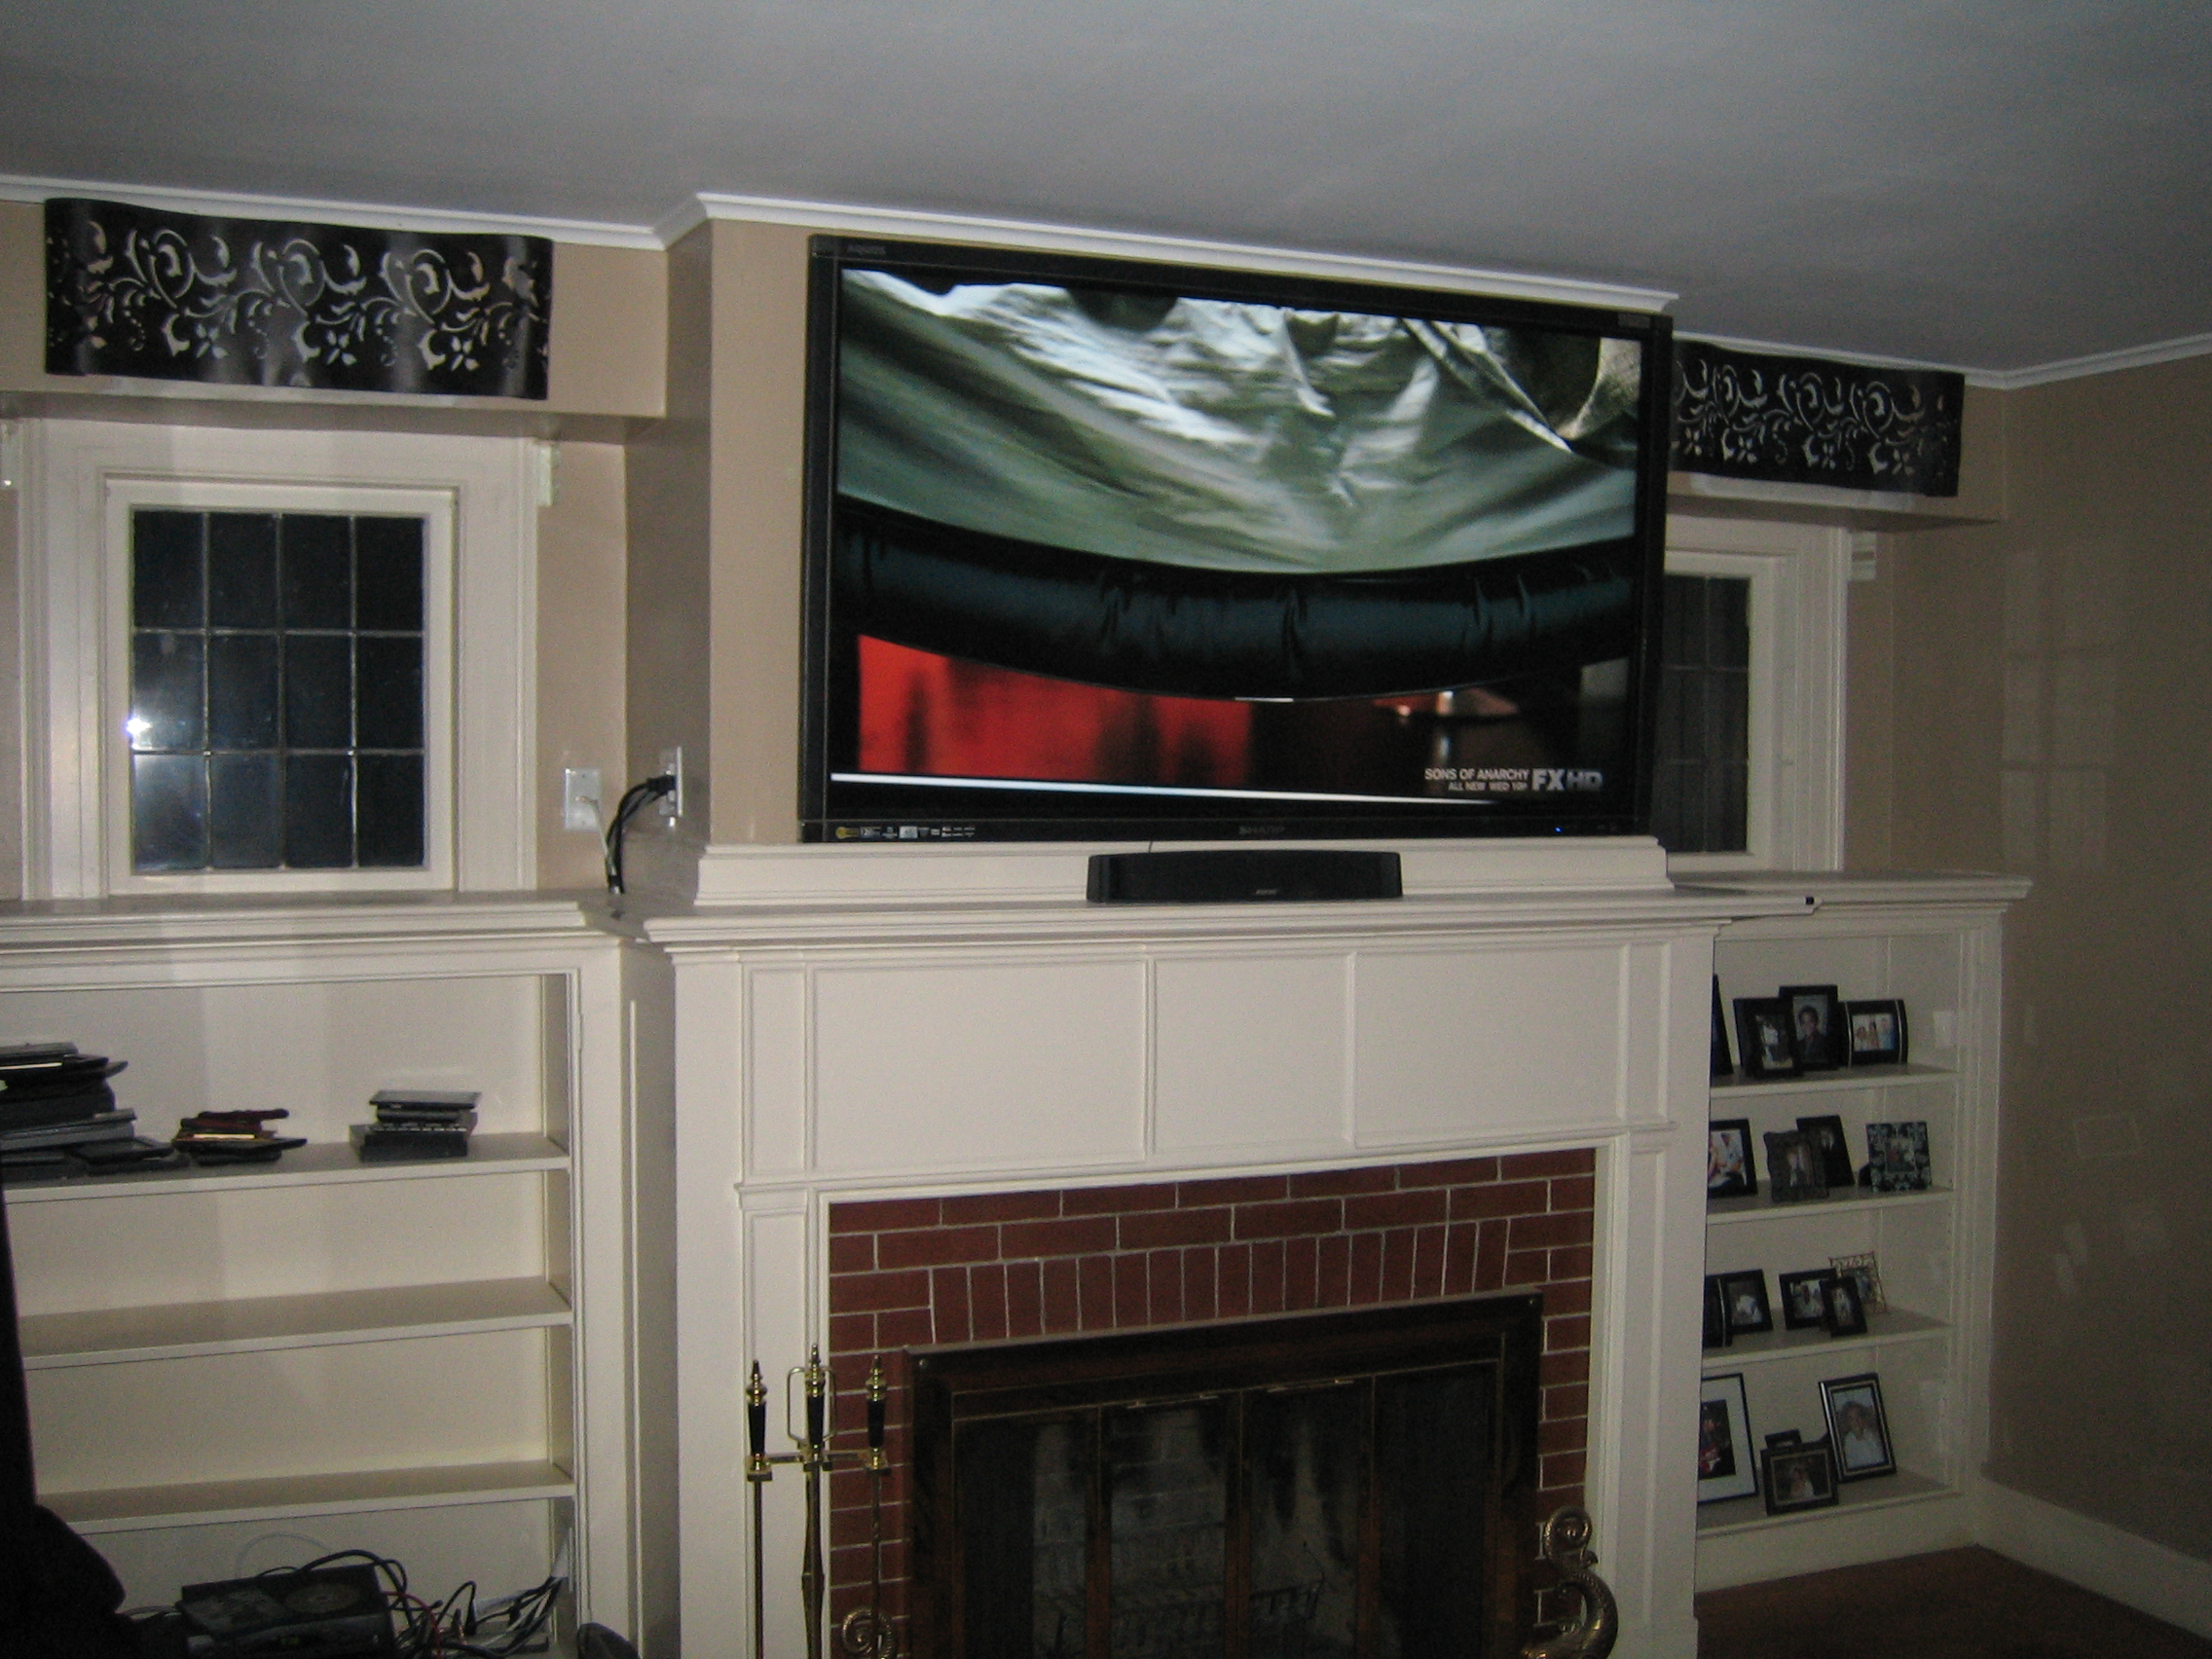 Cheshire ct mount tv above fireplace home theater installation for Installing in wall speakers on exterior wall